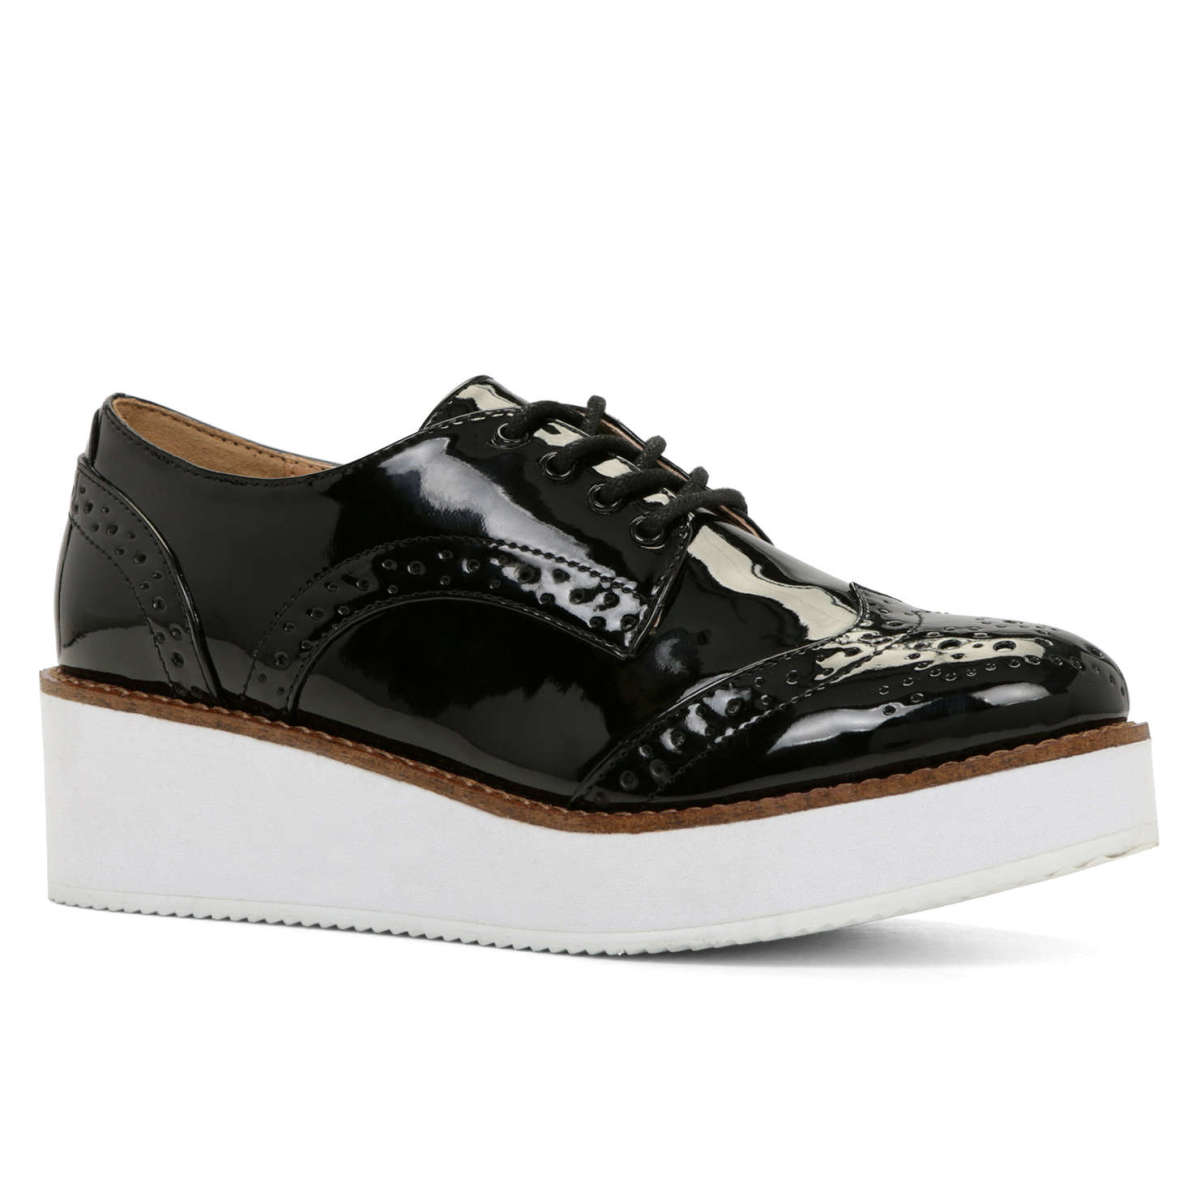 Aldo TABORRI flatform patent brogues ($70 CAd and $70 USd at aldo.com) – they also come in gold.